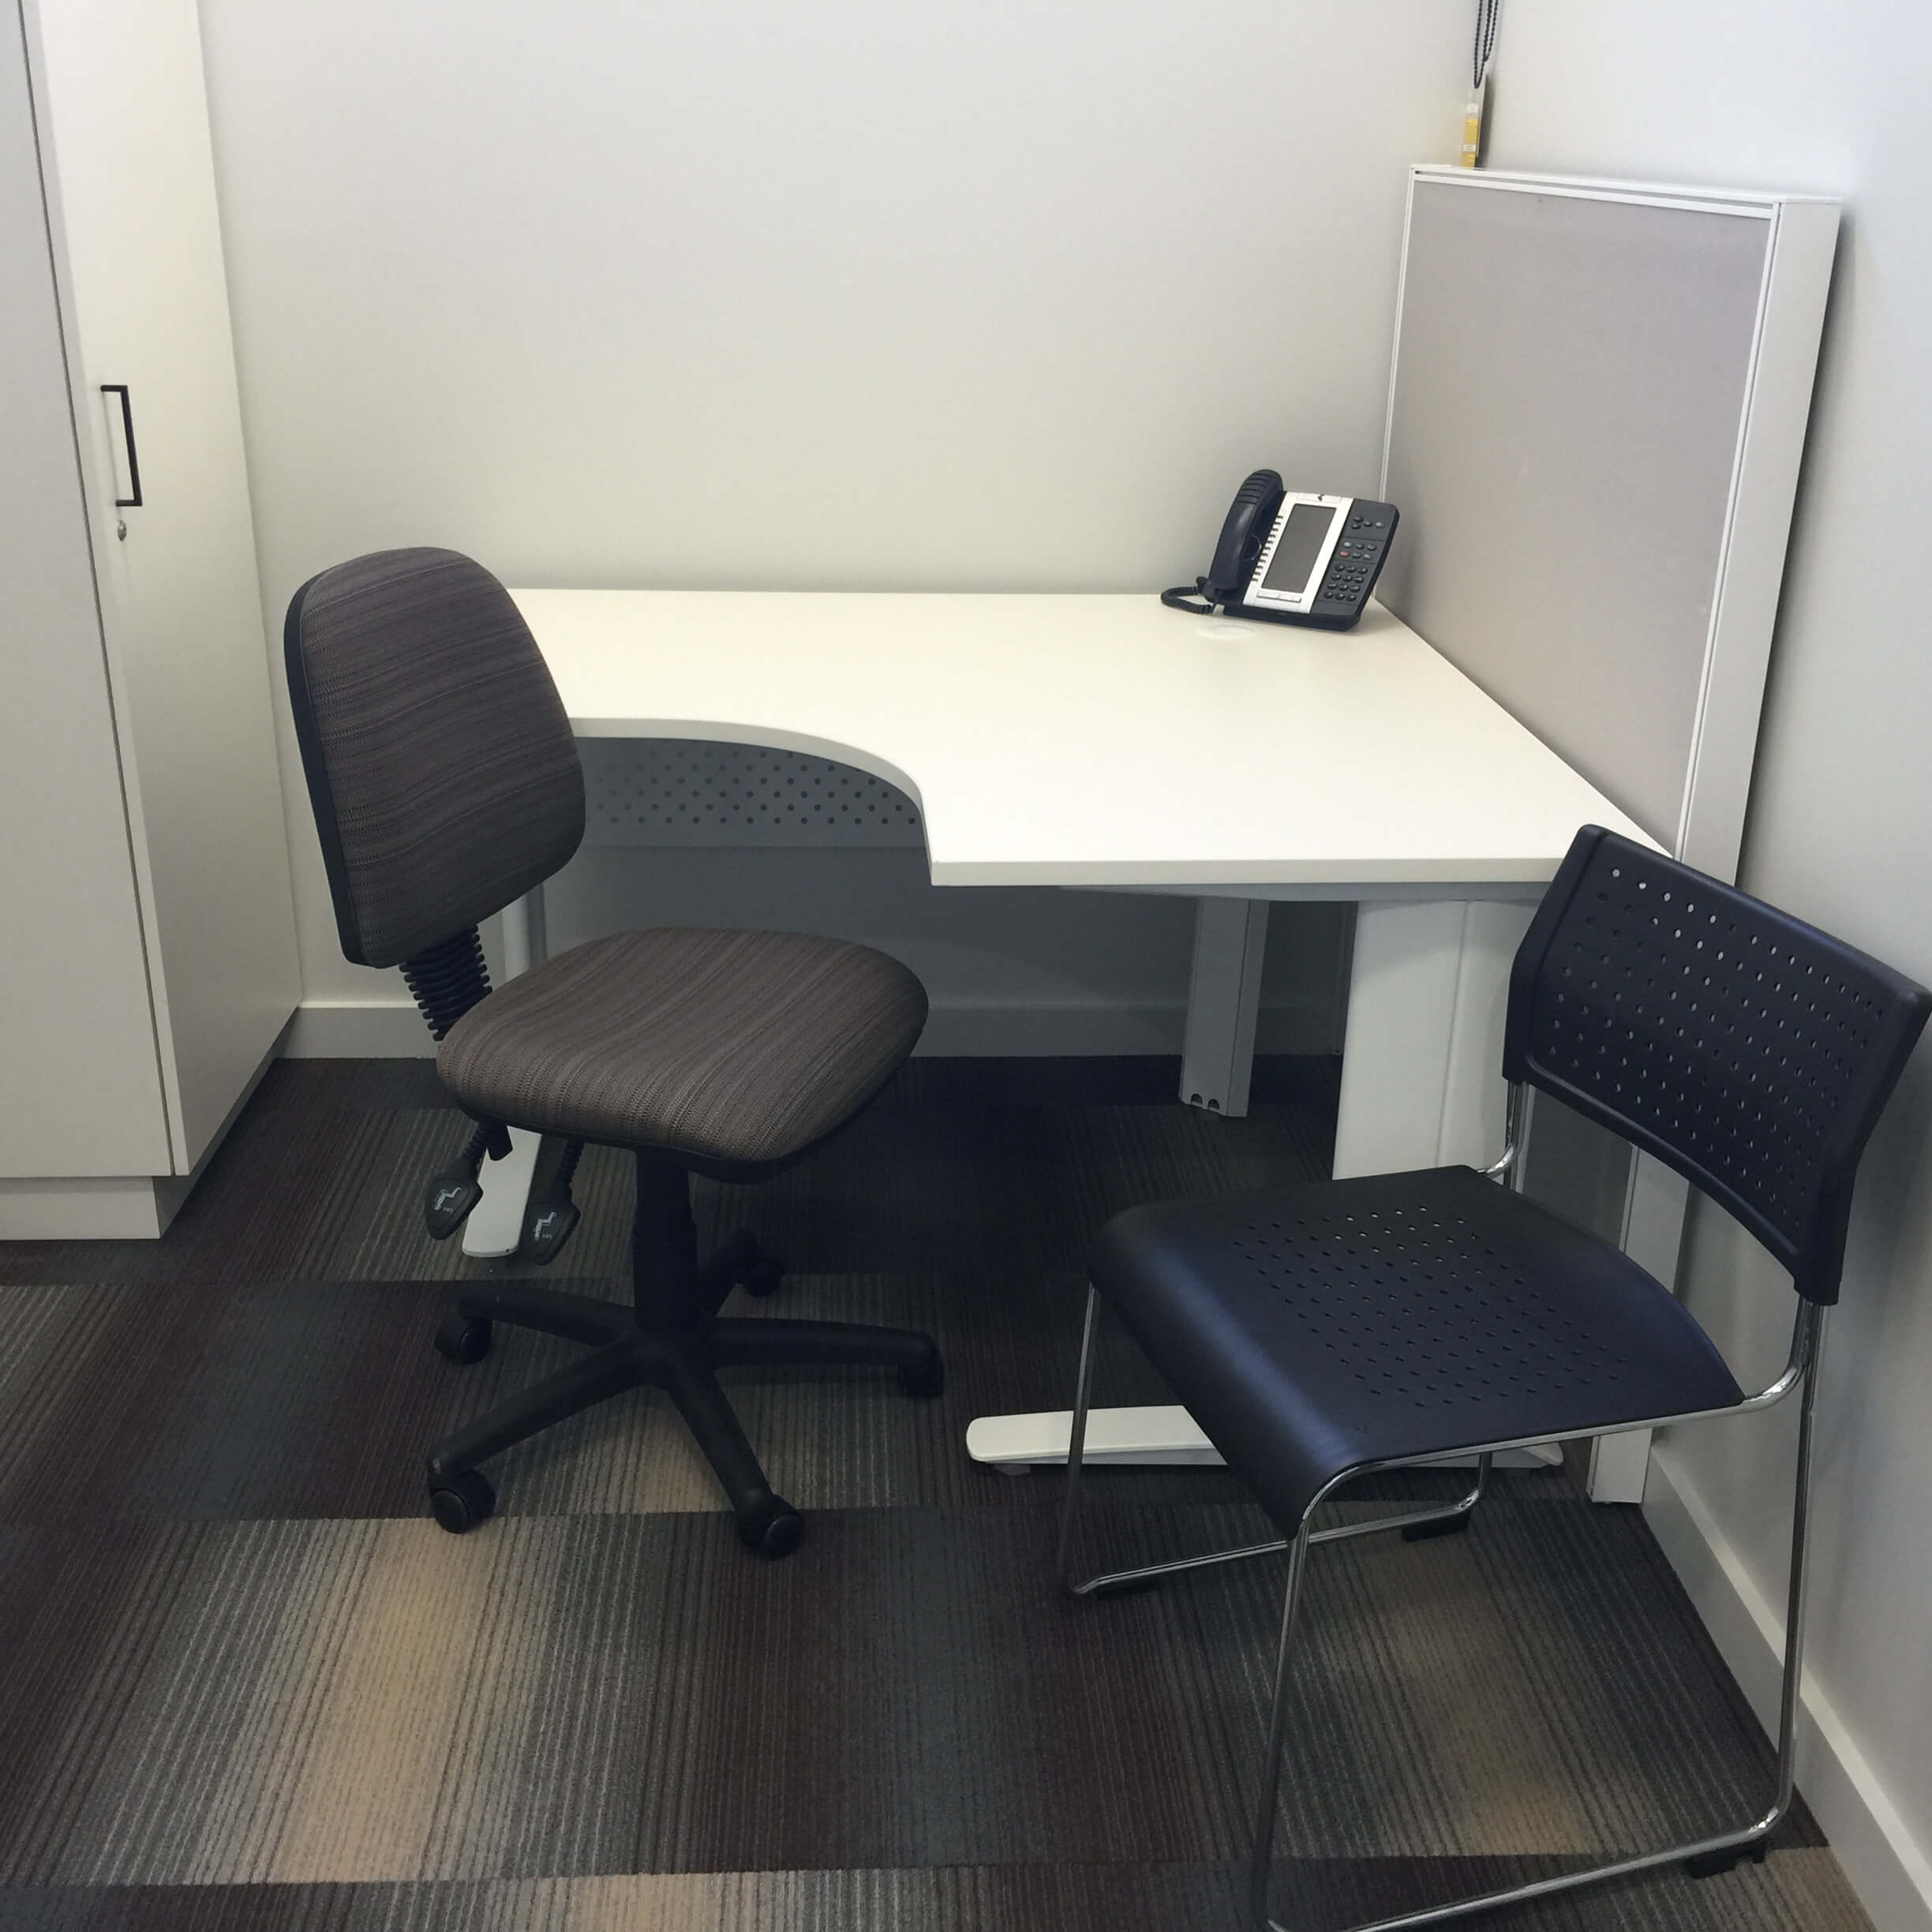 Consulting room with desk and two chairs